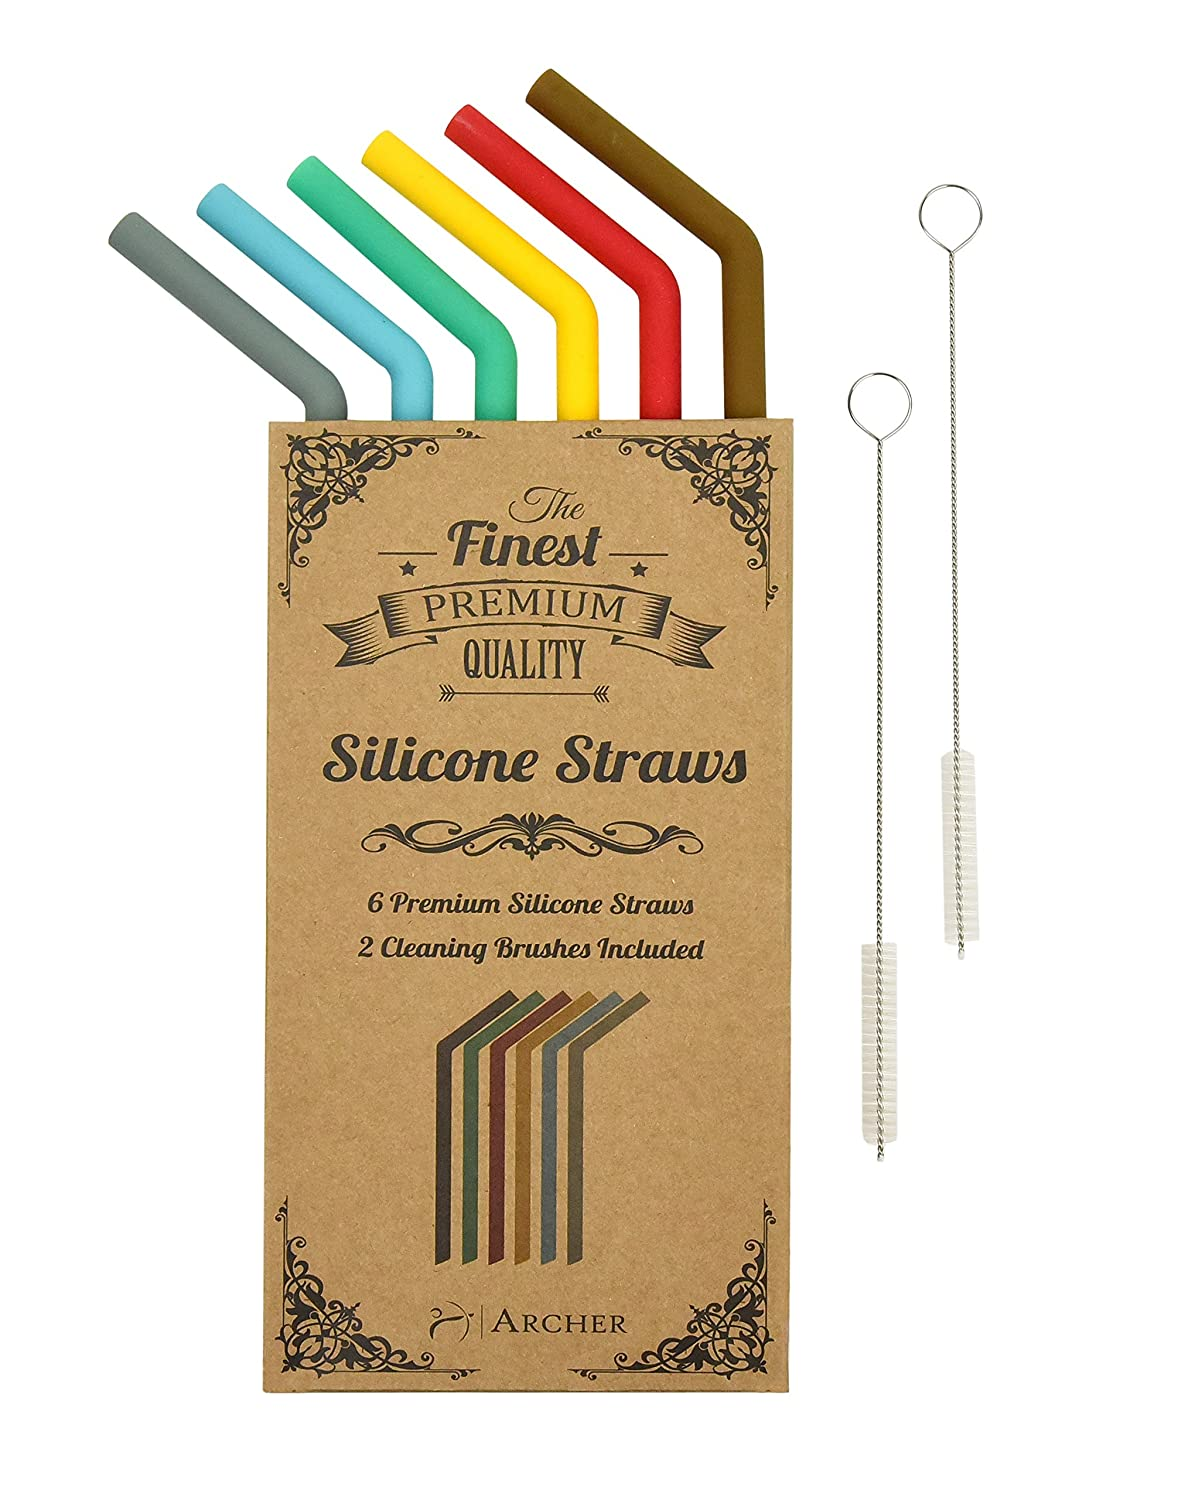 Big Reusable Straws - Silicone Drinking Straws by Archer